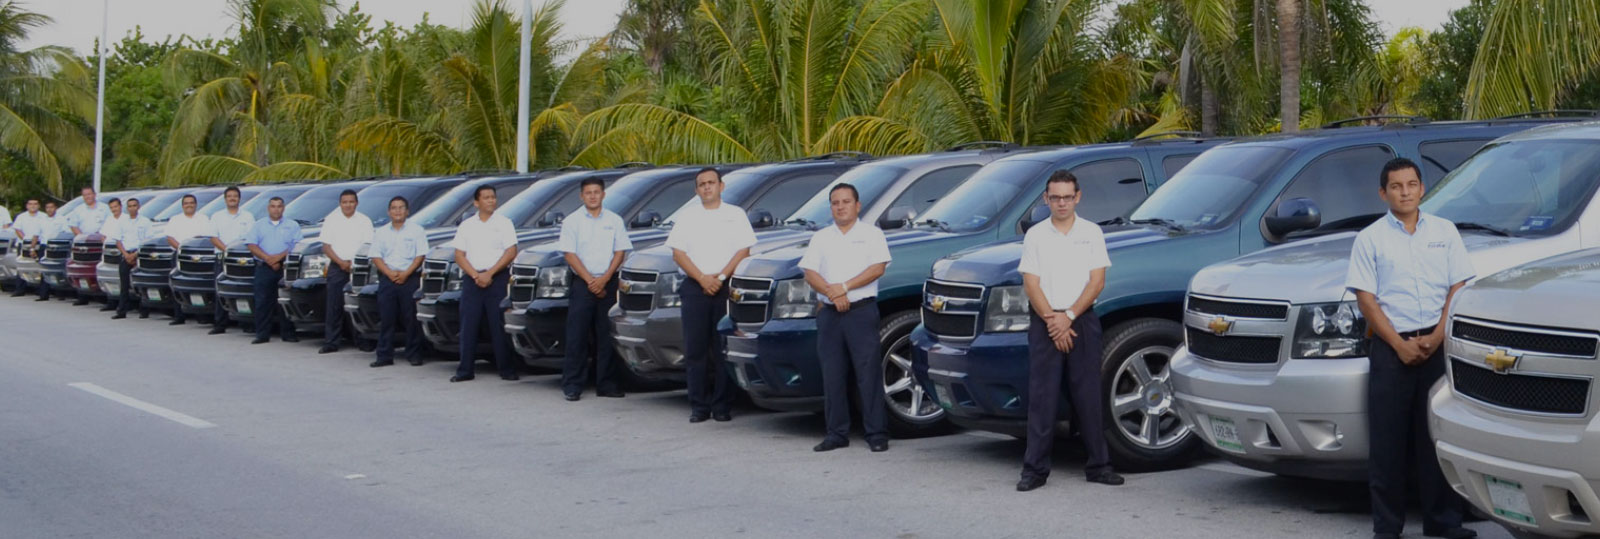 Los Cabos Airport Private Transportation | Los Cabos Airport Transportation Services